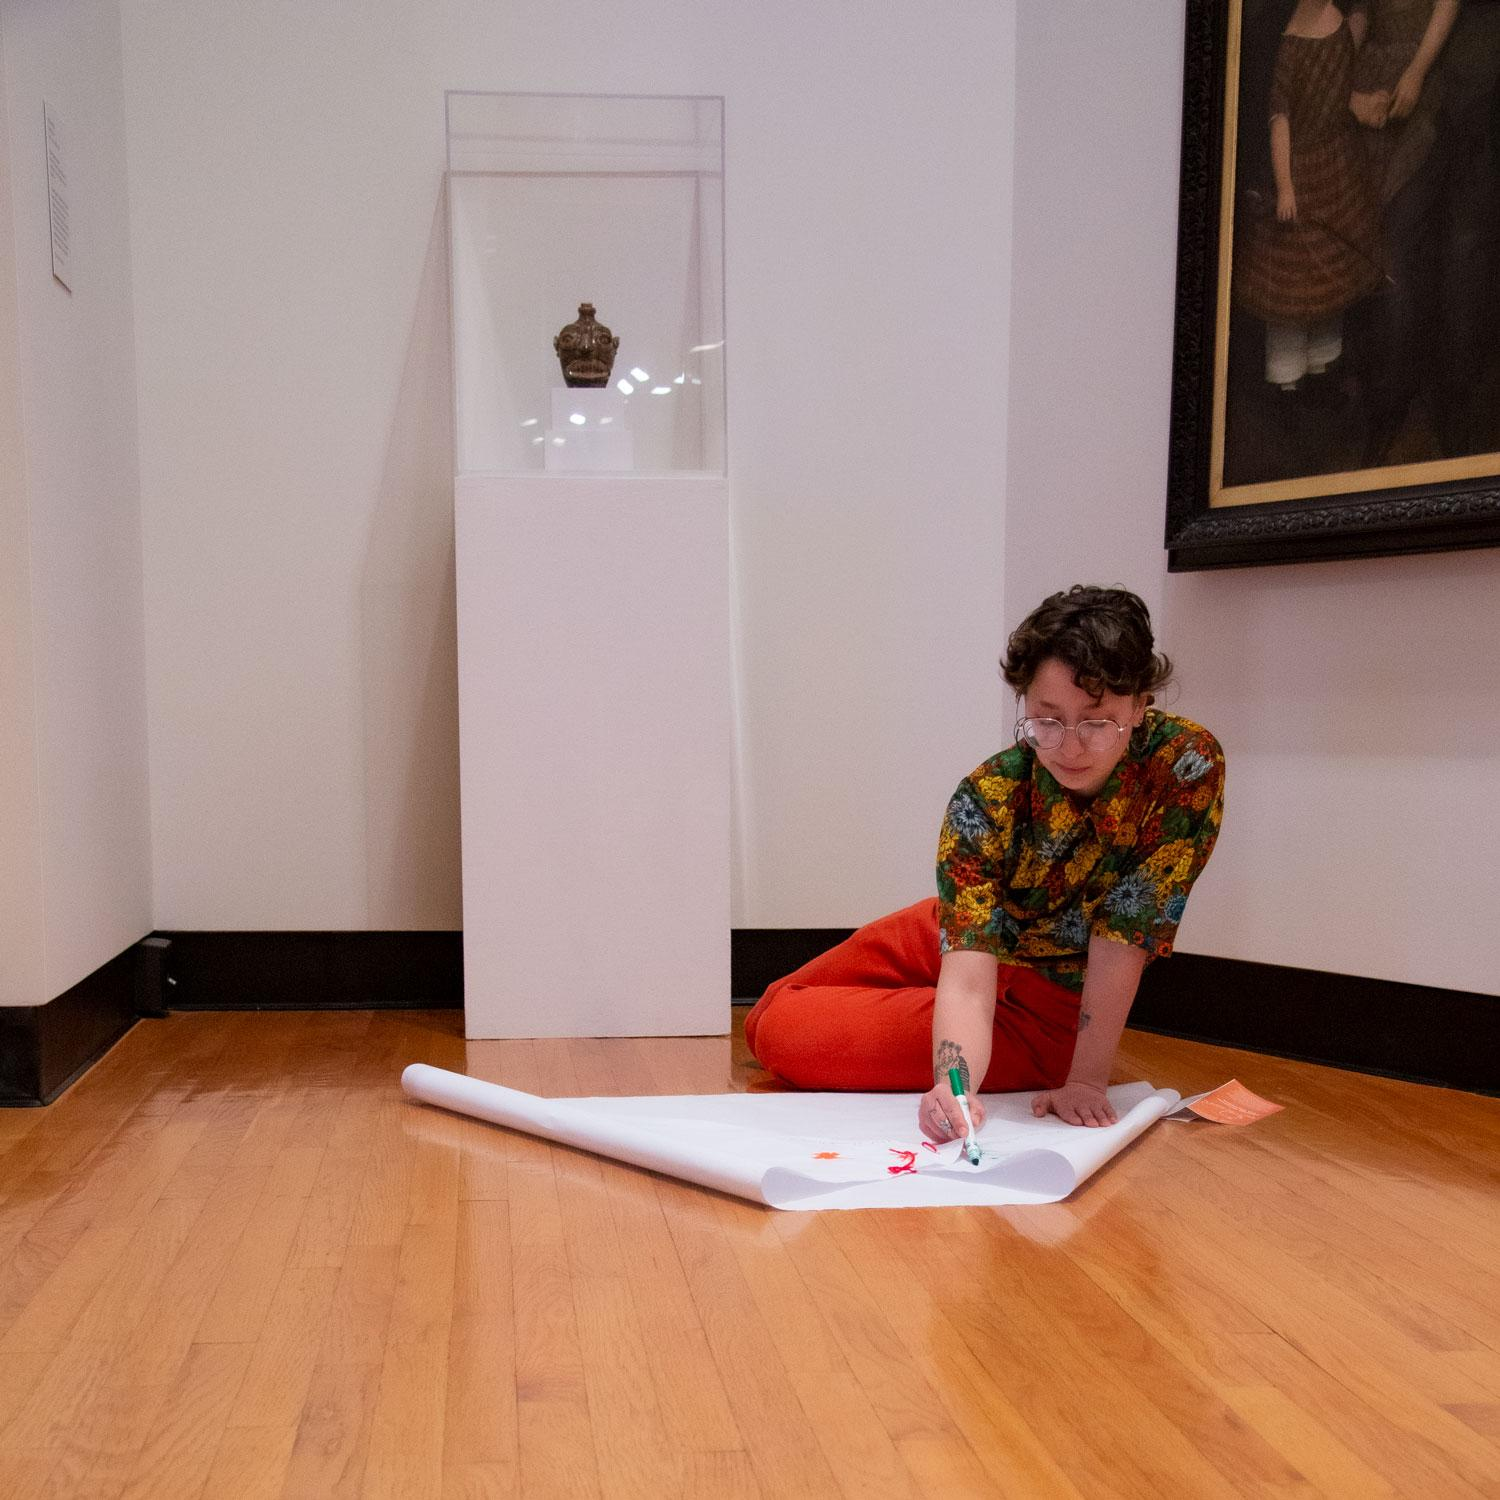 A young woman with short hair, a flowered shirt, and red pants sits on the floor and draws on her paper cape (also on the floor). Behind her is a small, olive green pre-Civil War Face Jug from Edgefield, South Carolina on a pedestal.